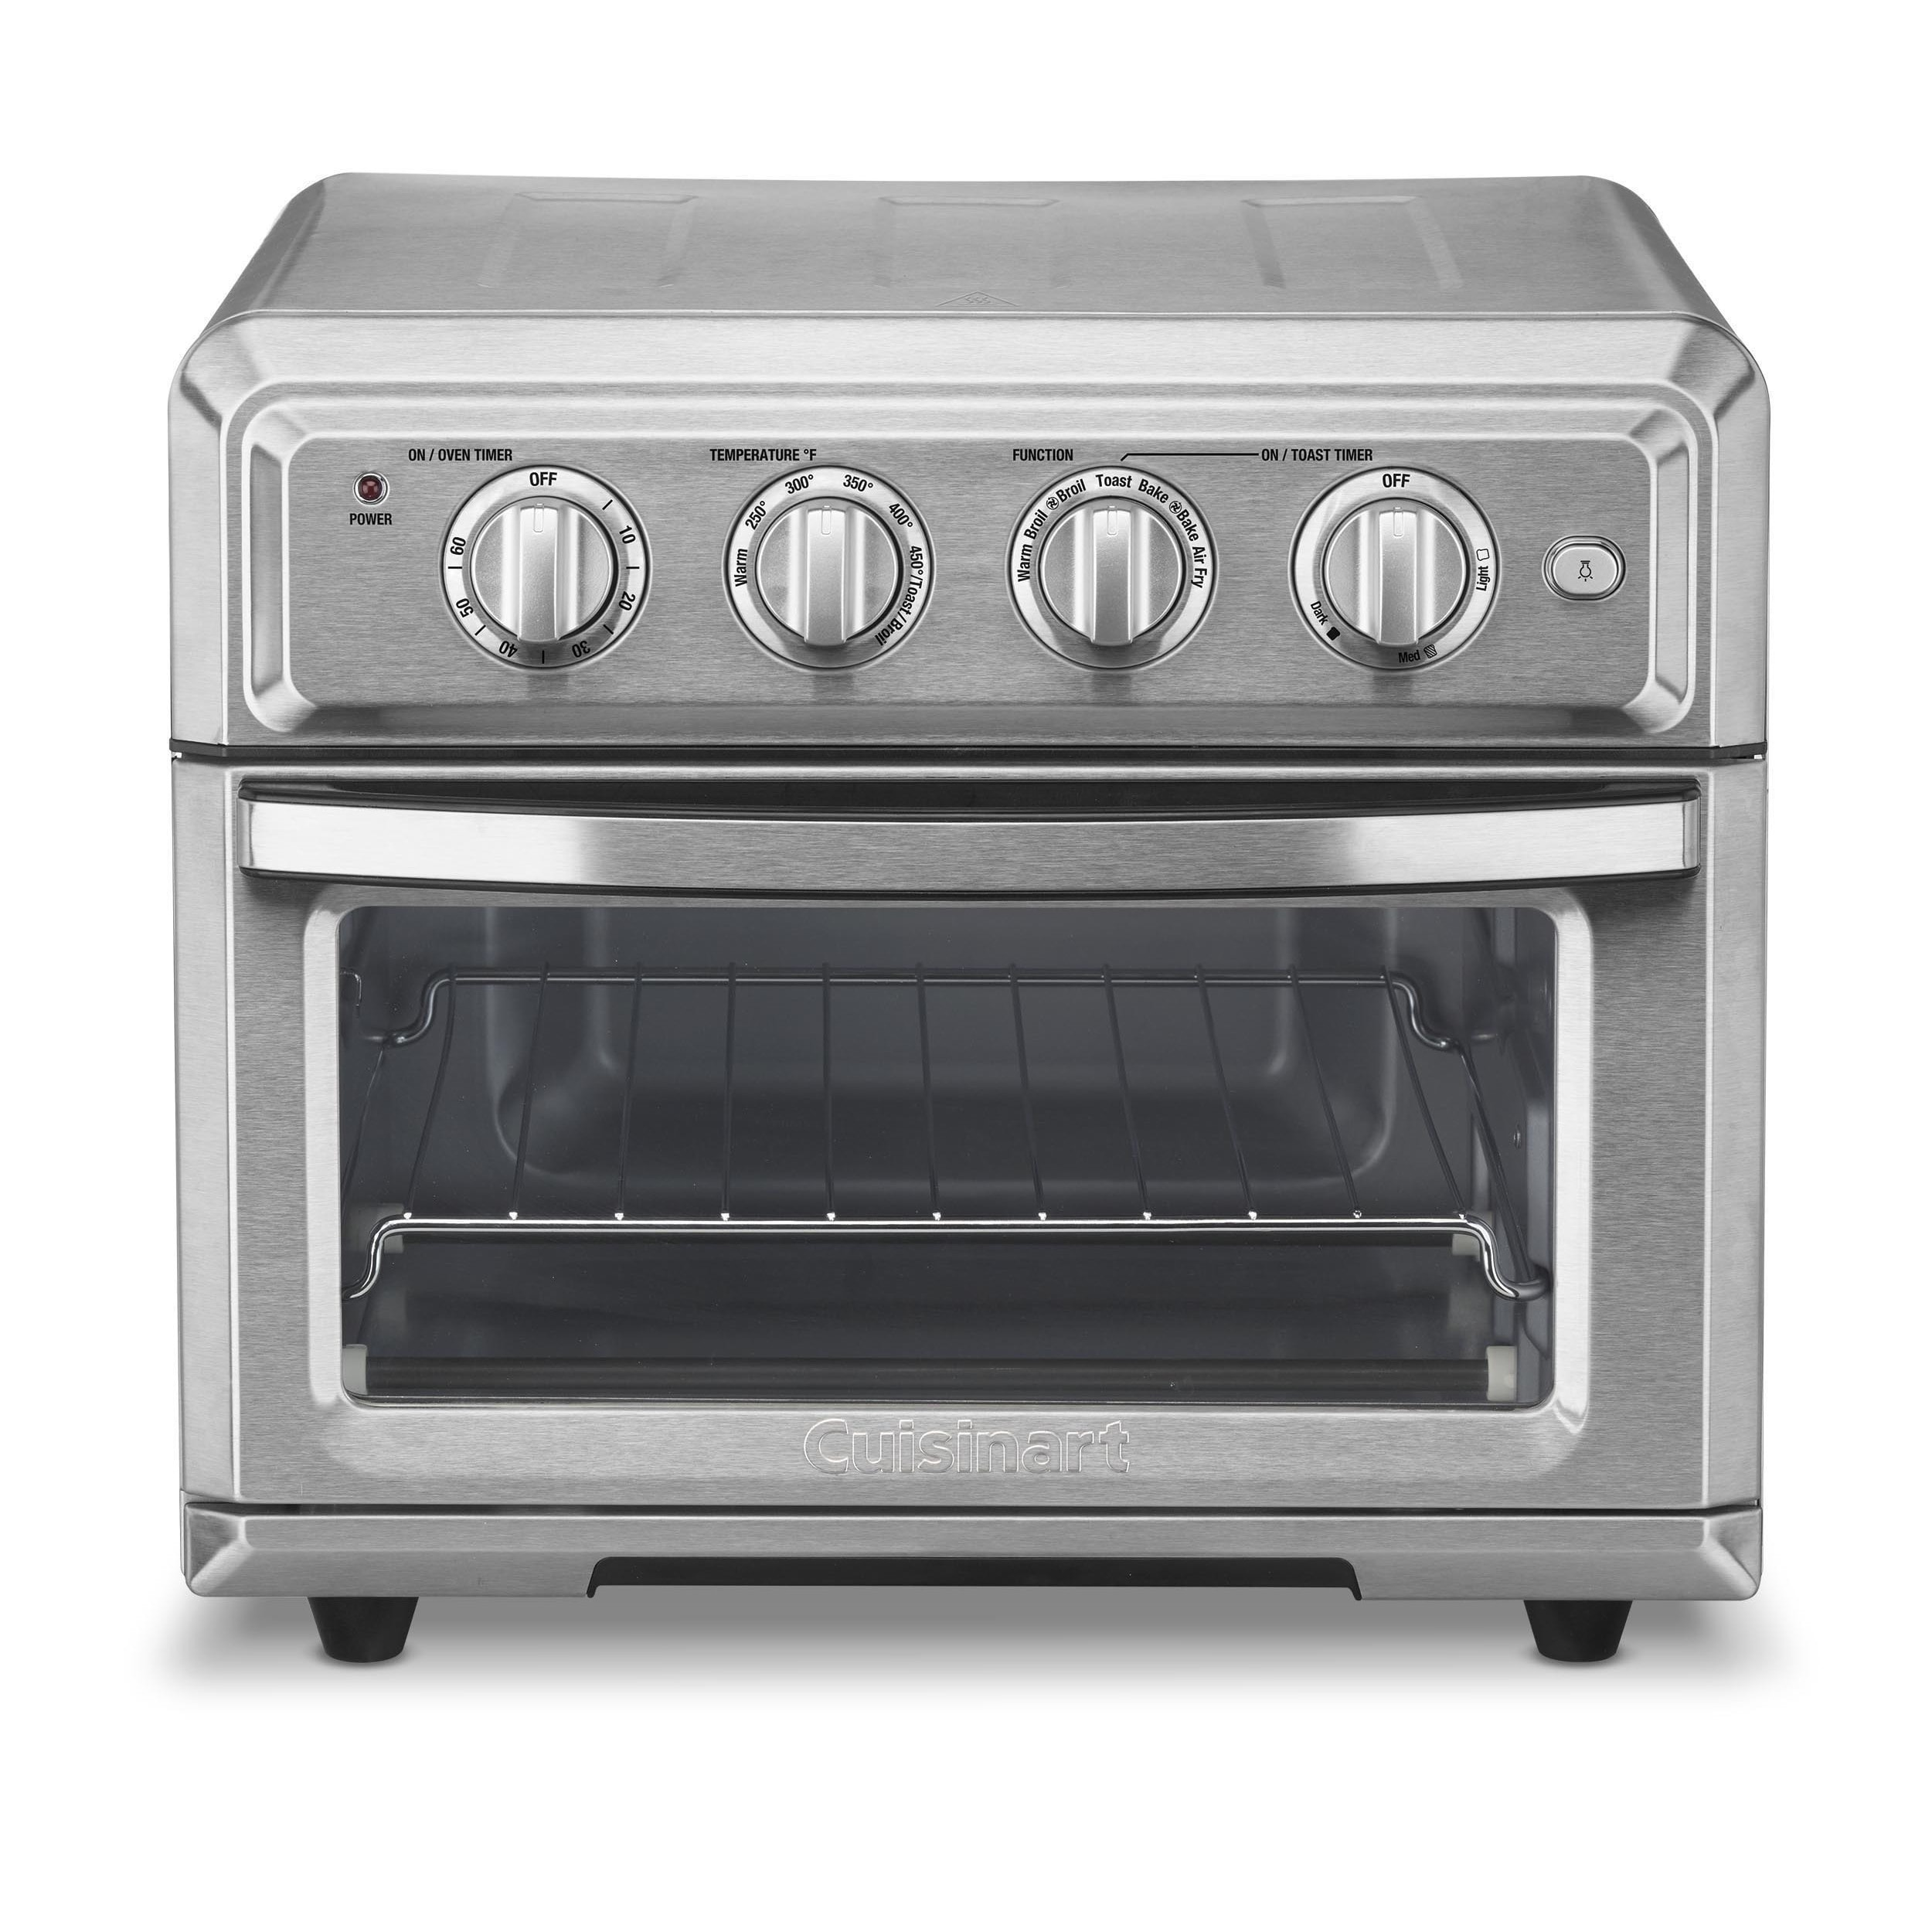 Shop Cuisinart TOA 60 Stainless Steel Combination Air Fryer Toaster Oven